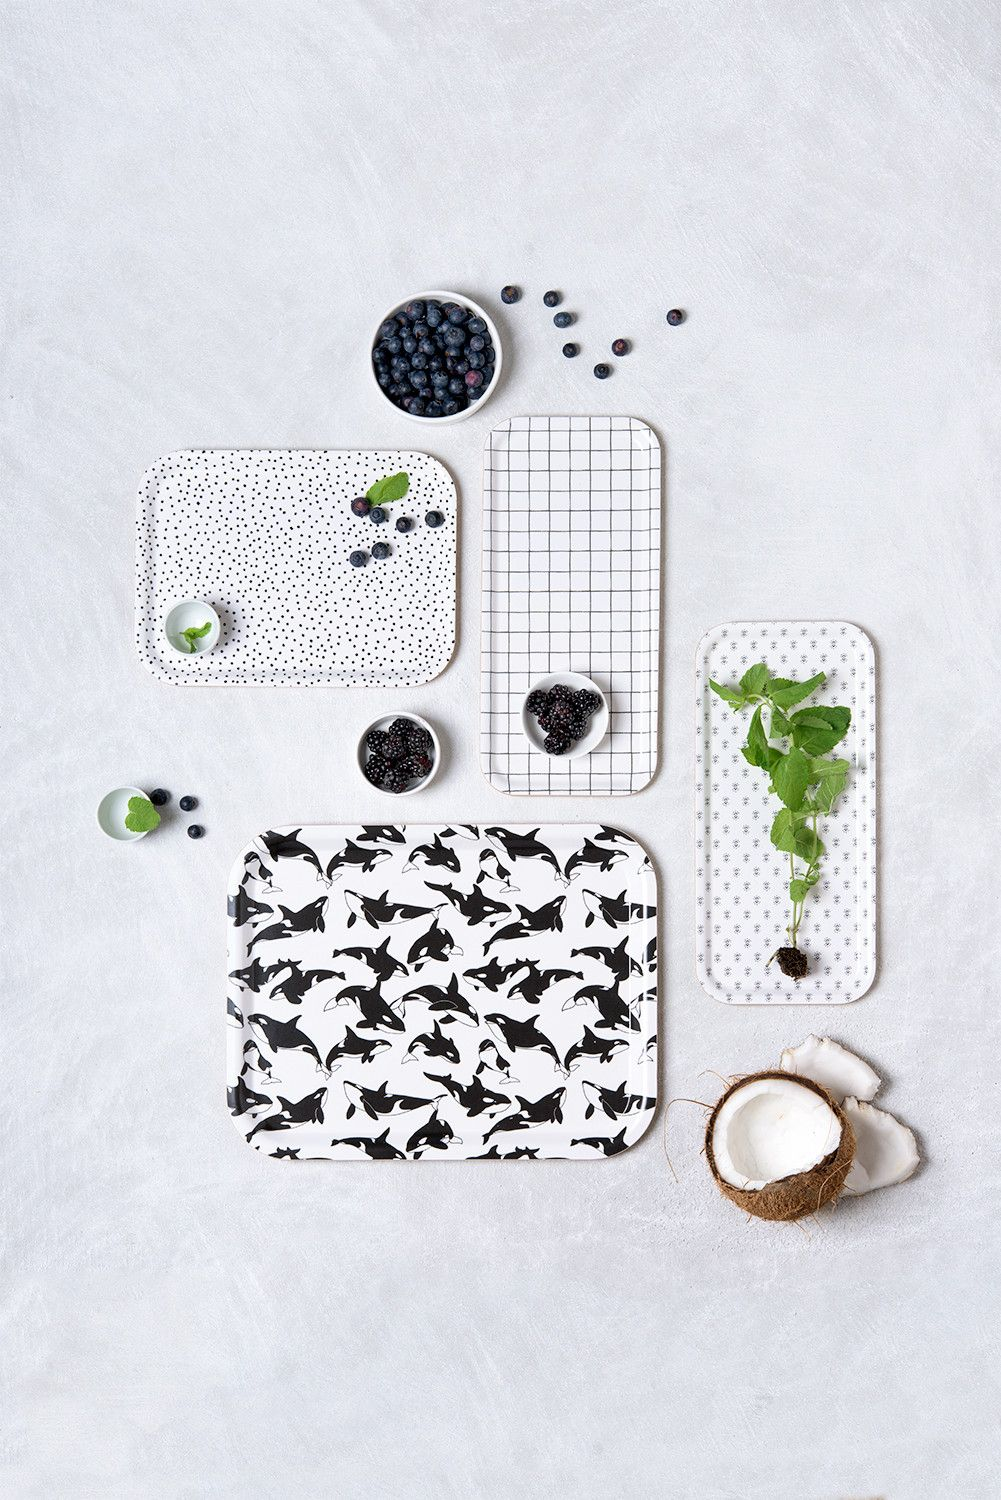 Birch Tray - Black and White Orcas Pattern  by © Micush  #Newcollection #tablware #tabletop #tray #orca #scandystyle #modernhome #homedecor #blackandwhite #kitchen #dining